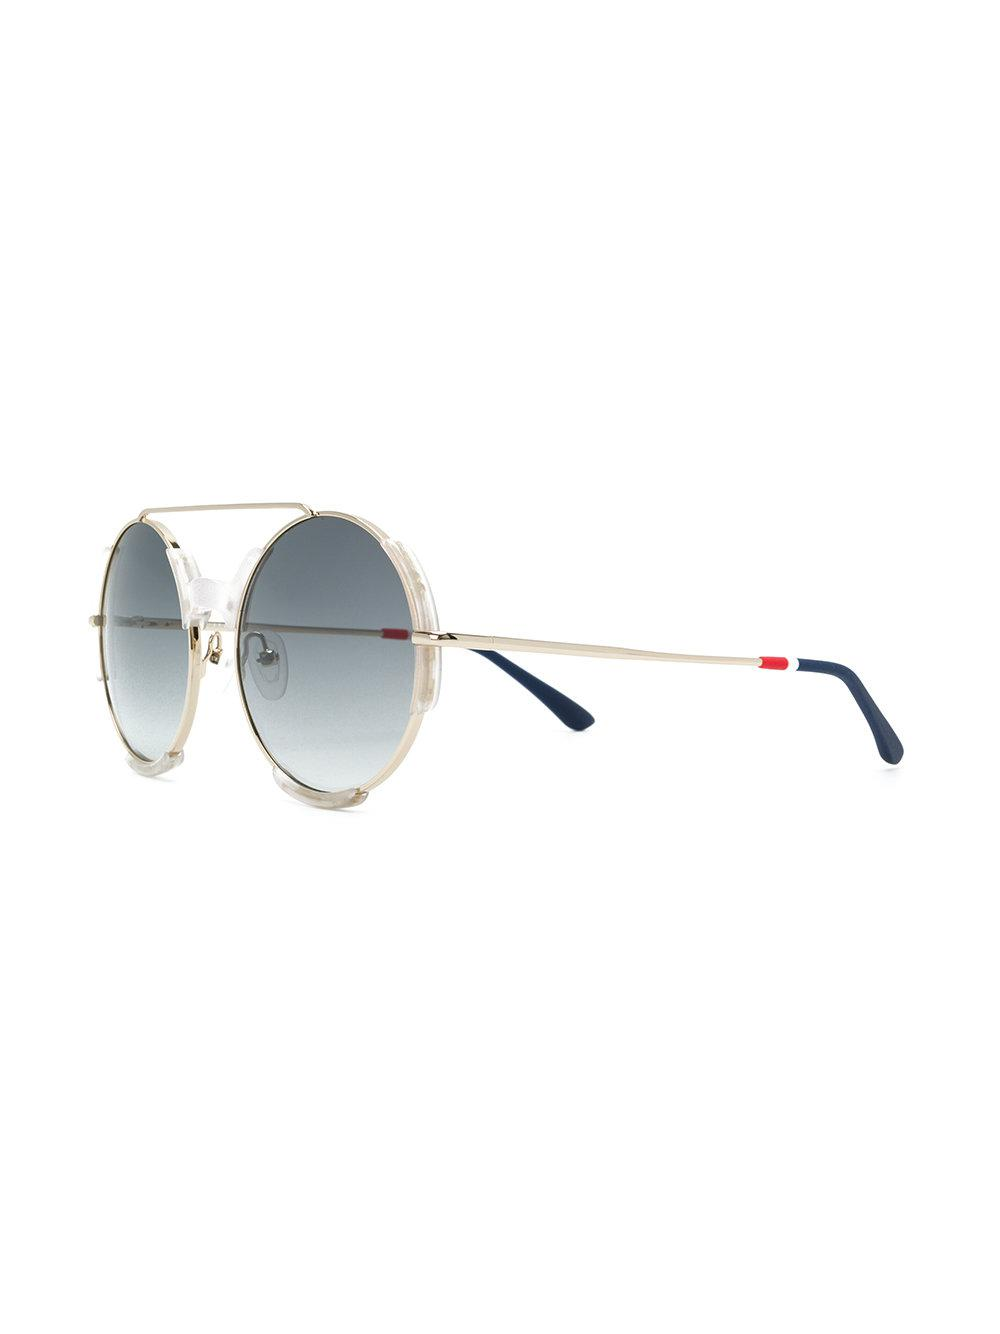 dafe159f50 Lyst - Orlebar Brown X Linda Farrow Round-frame Sunglasses in Metallic